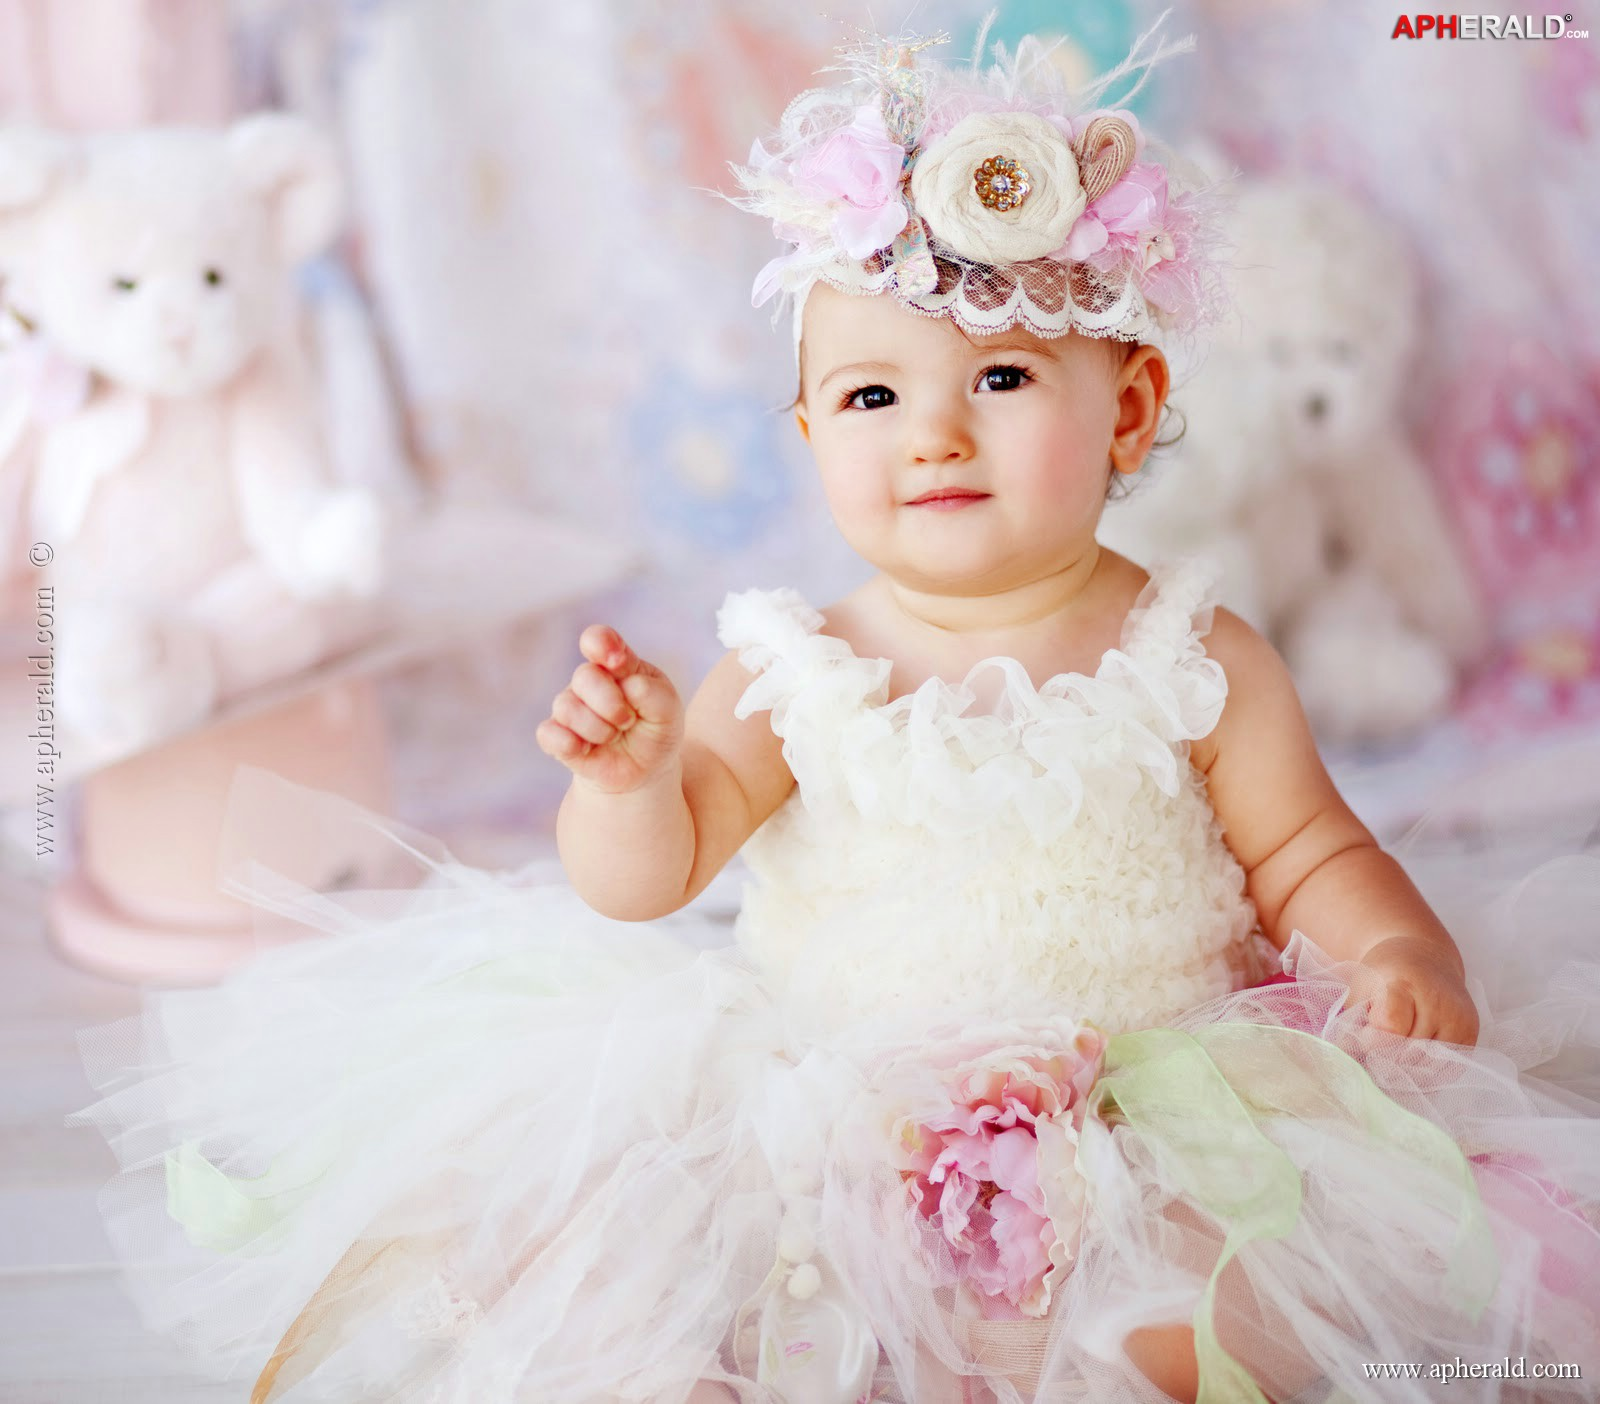 Cute Baby Girl Wallpapers Facebook Cute Baby Girl Wallpapers Free Download Hd Beautiful Desktop Images 1600x1404